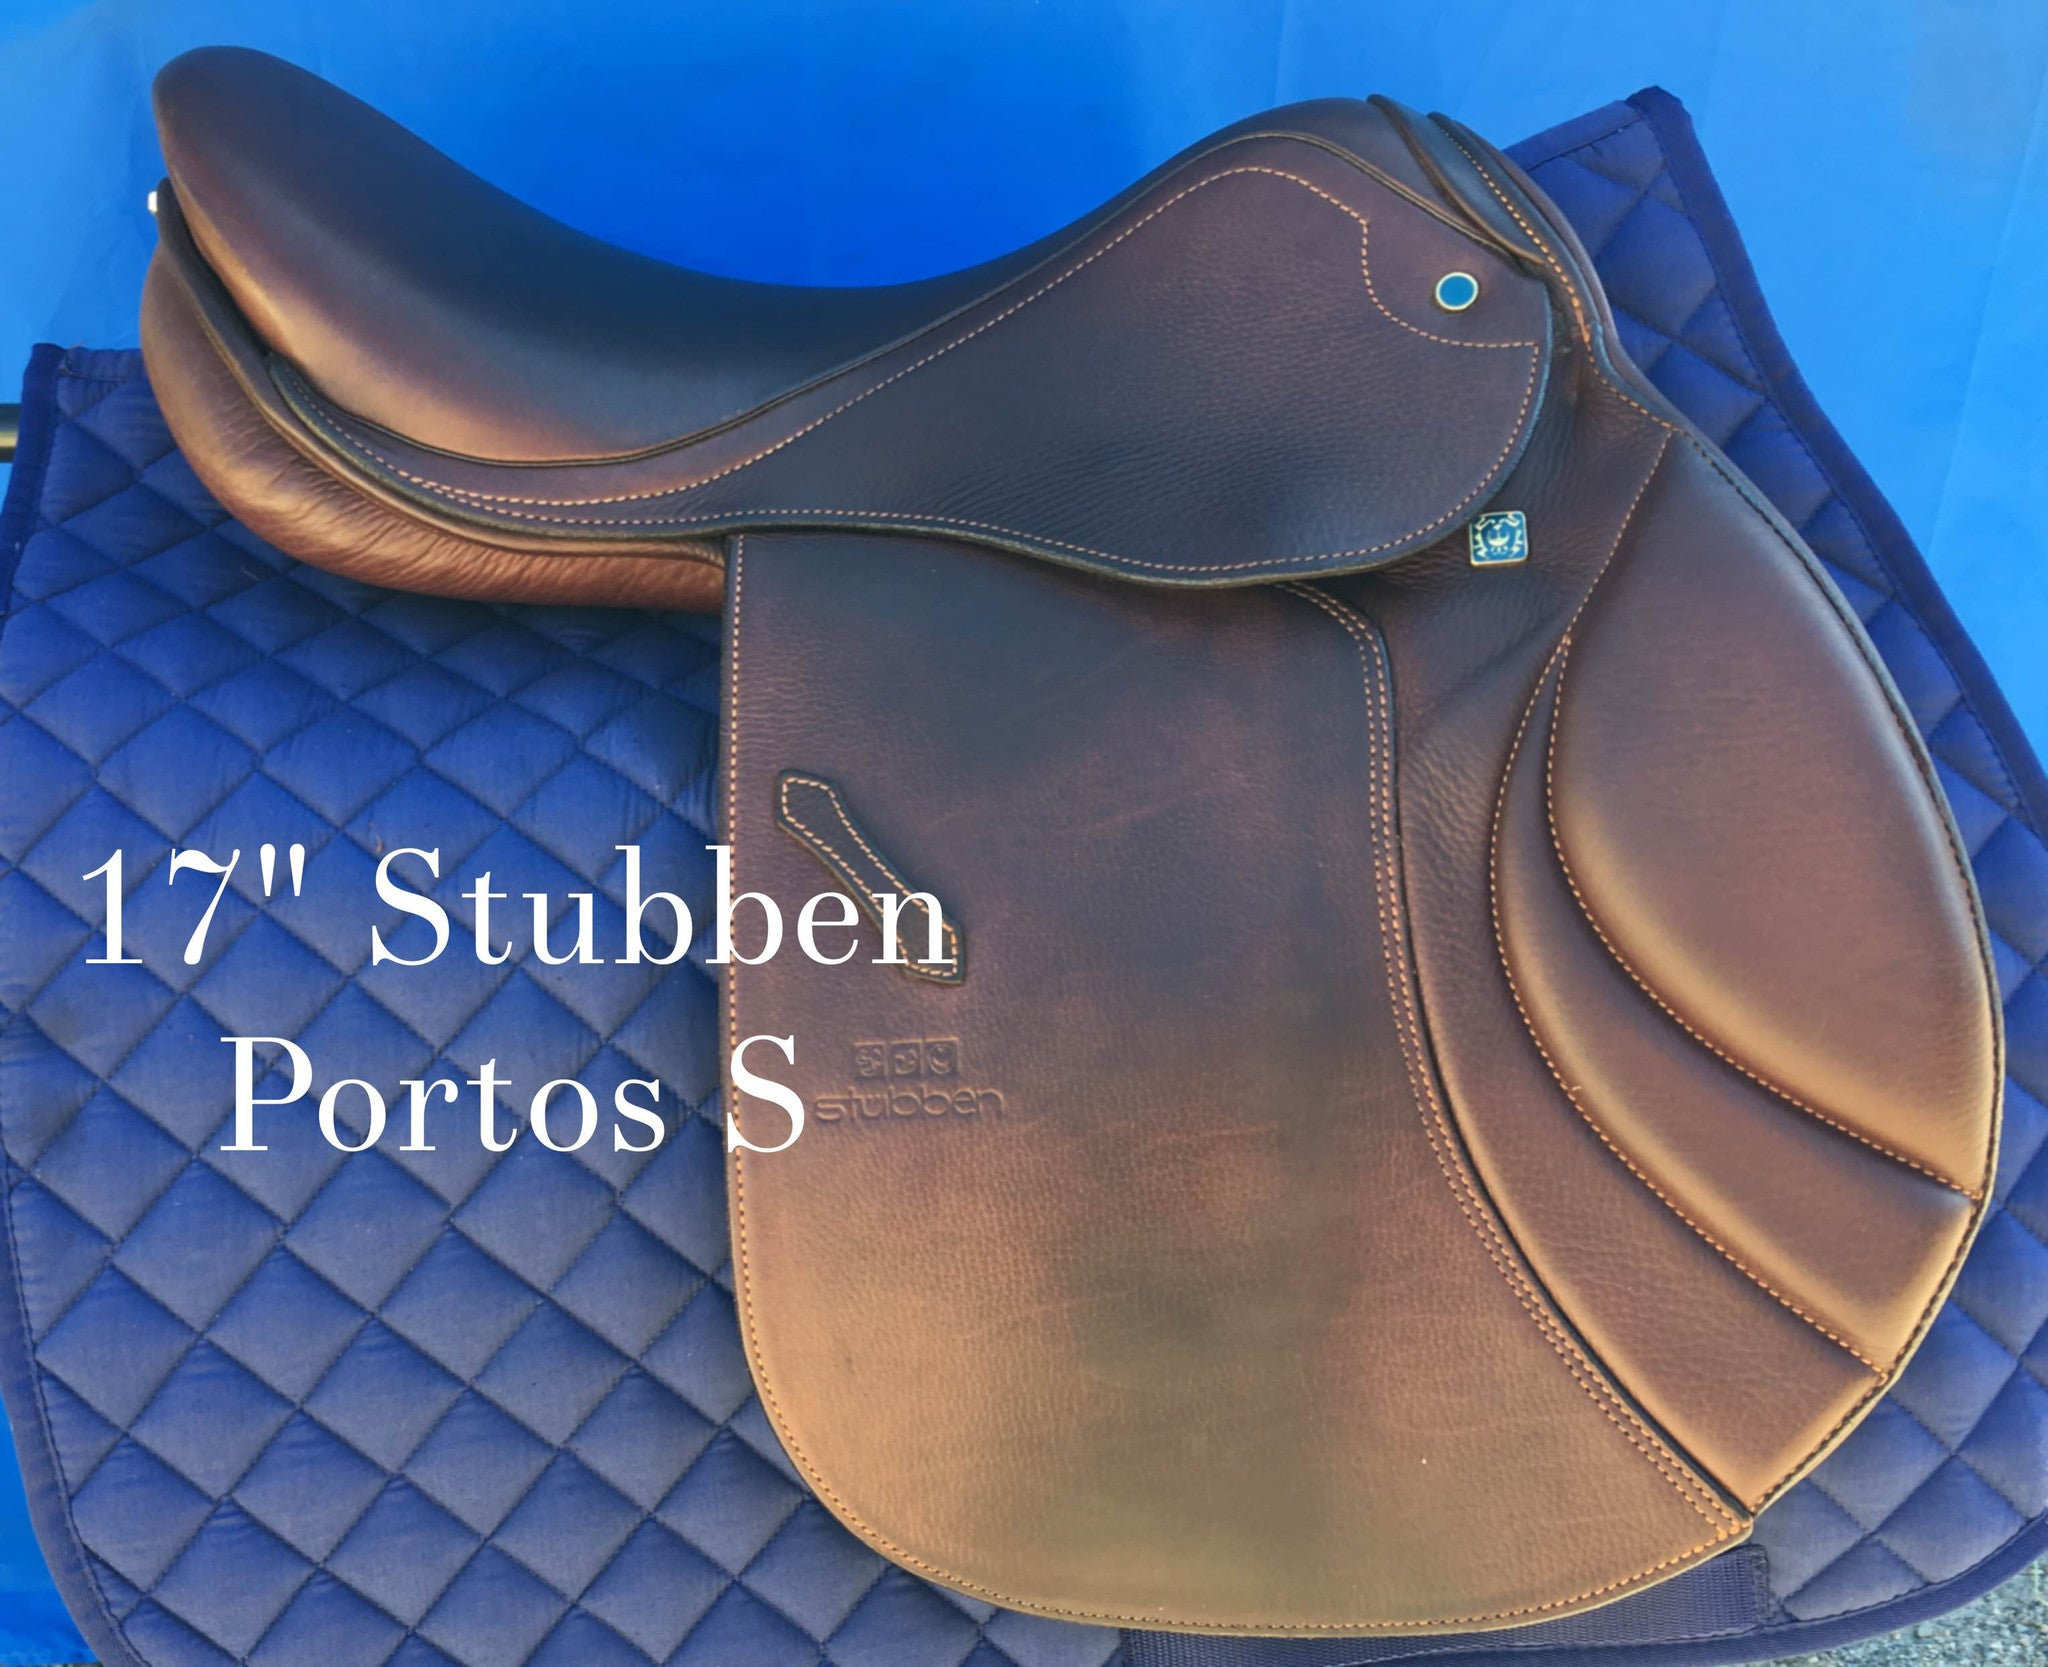 Stubben Portos S Saddle - Demo